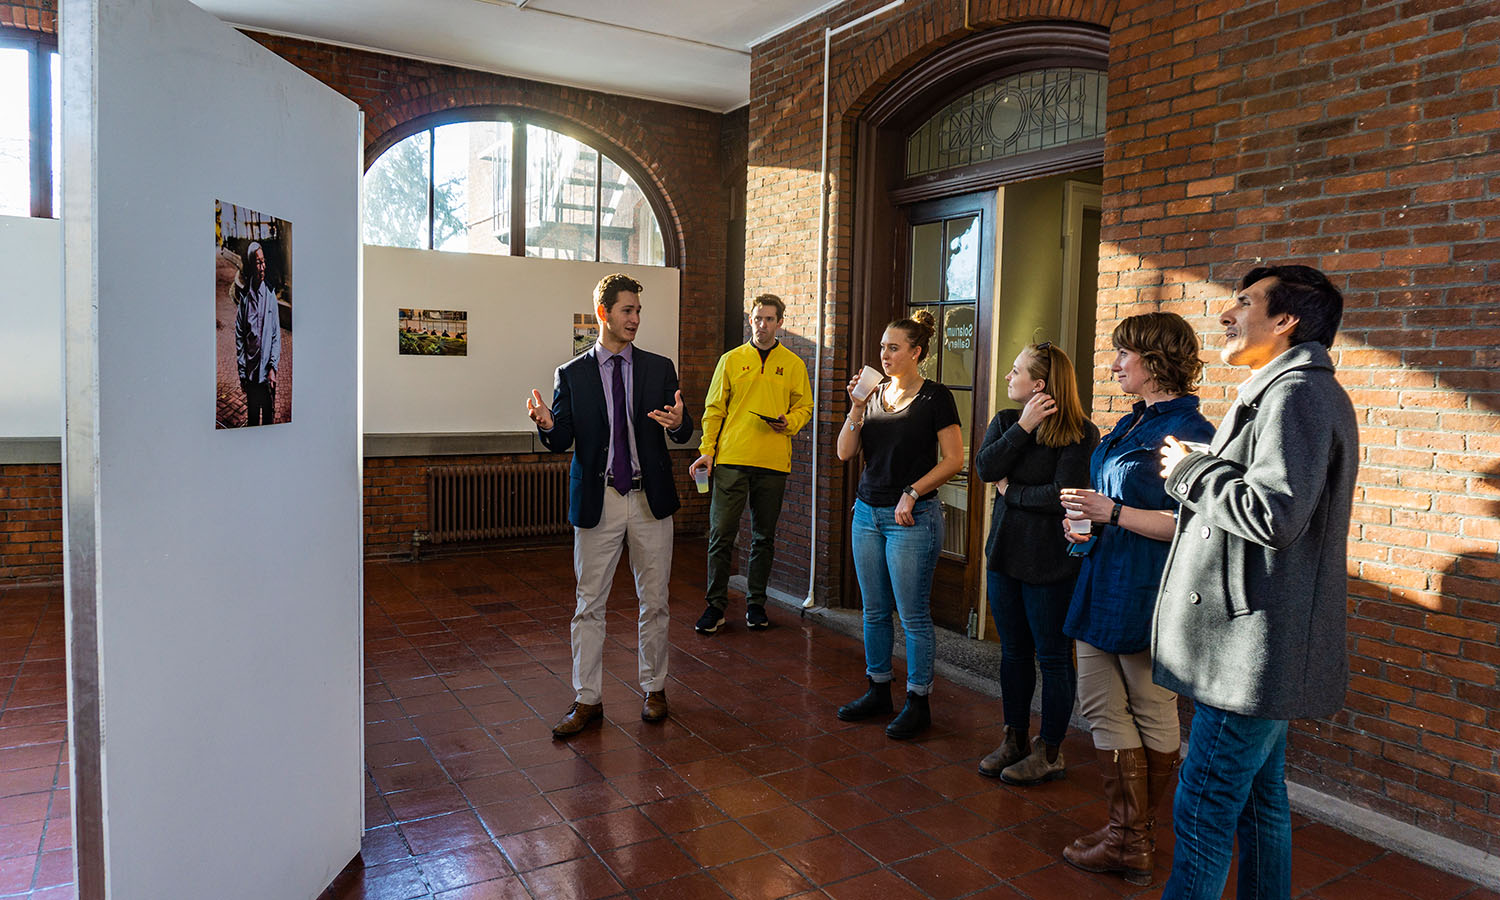 Jonah Salita '19 hosts a Global Cafe in the Solarium Gallery at Houghton House, showcasing his photographs of Fu Tei elders he took while studying abroad in Hong Kong.